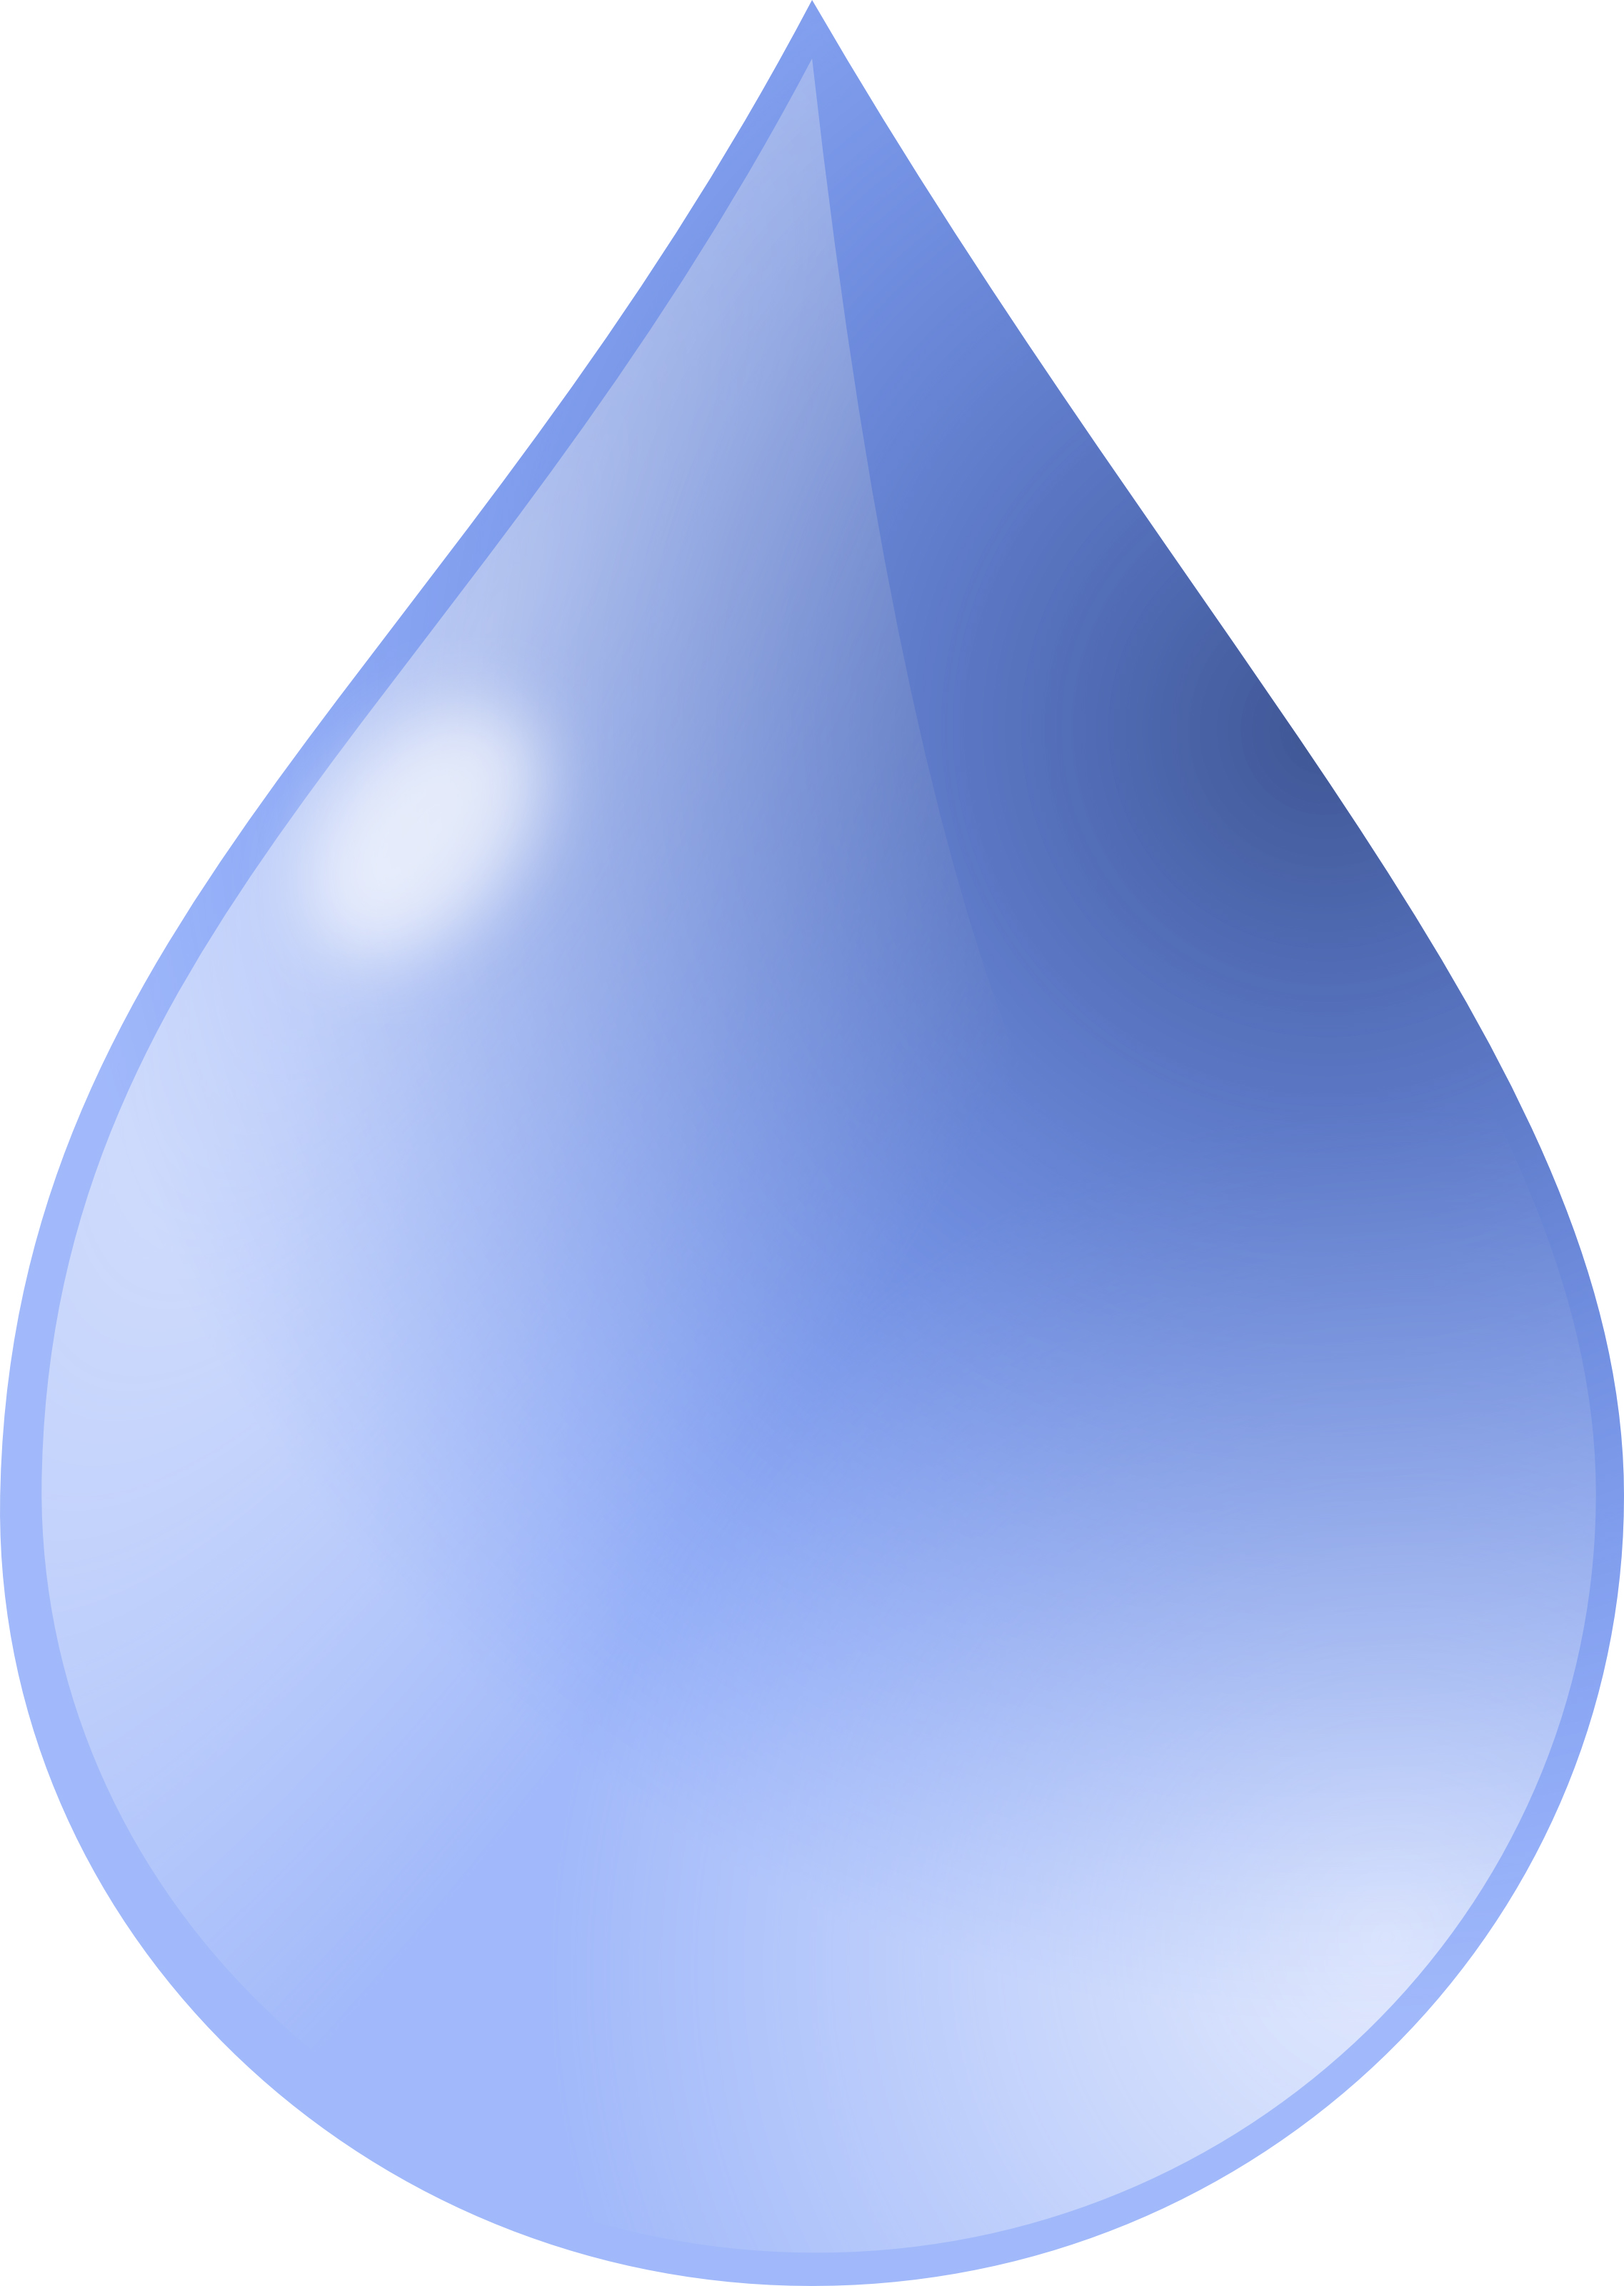 Water Drop Clip Art - ClipArt Best